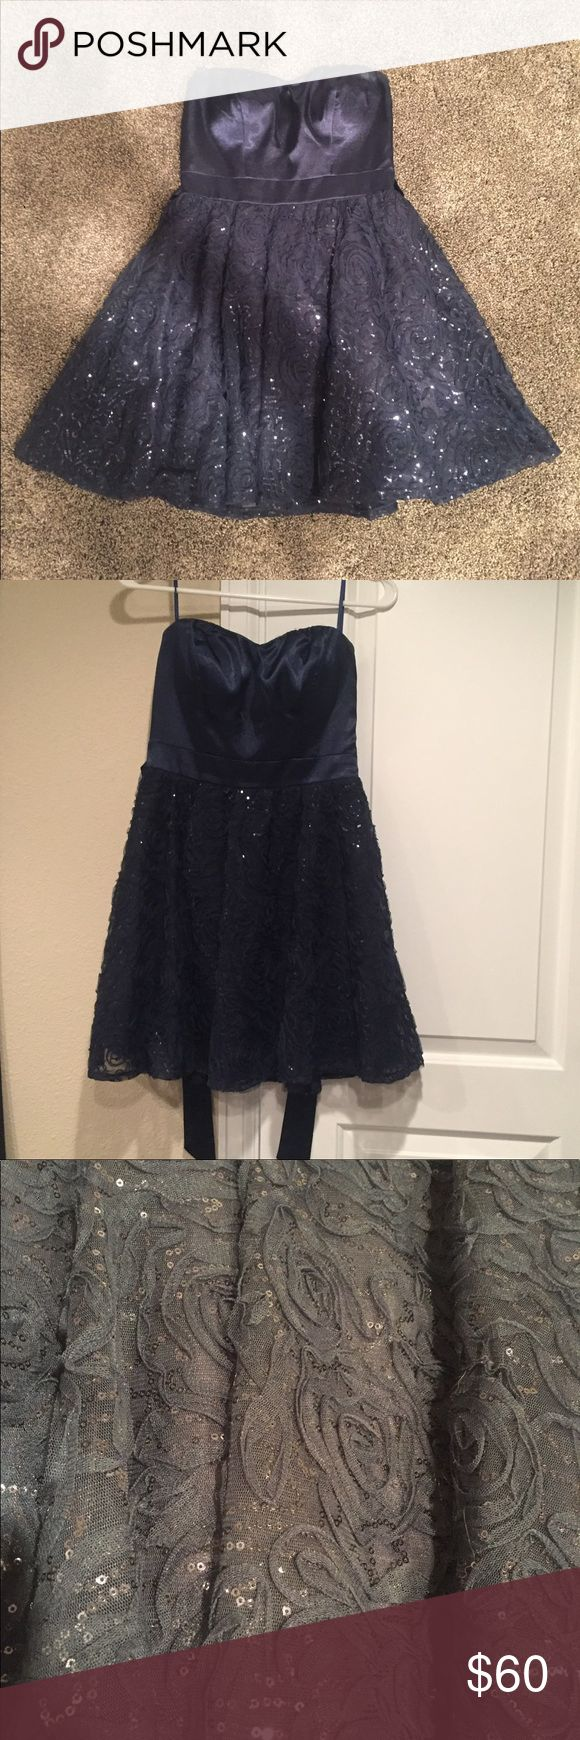 Homecoming/Prom Dress Navy blue strapless dress. Top is a silky sort of fabric and bottom has rose details and sparkles, with a silky tie around the waist. Says size seven but fits more like a 4. Only worn once. Dresses Prom